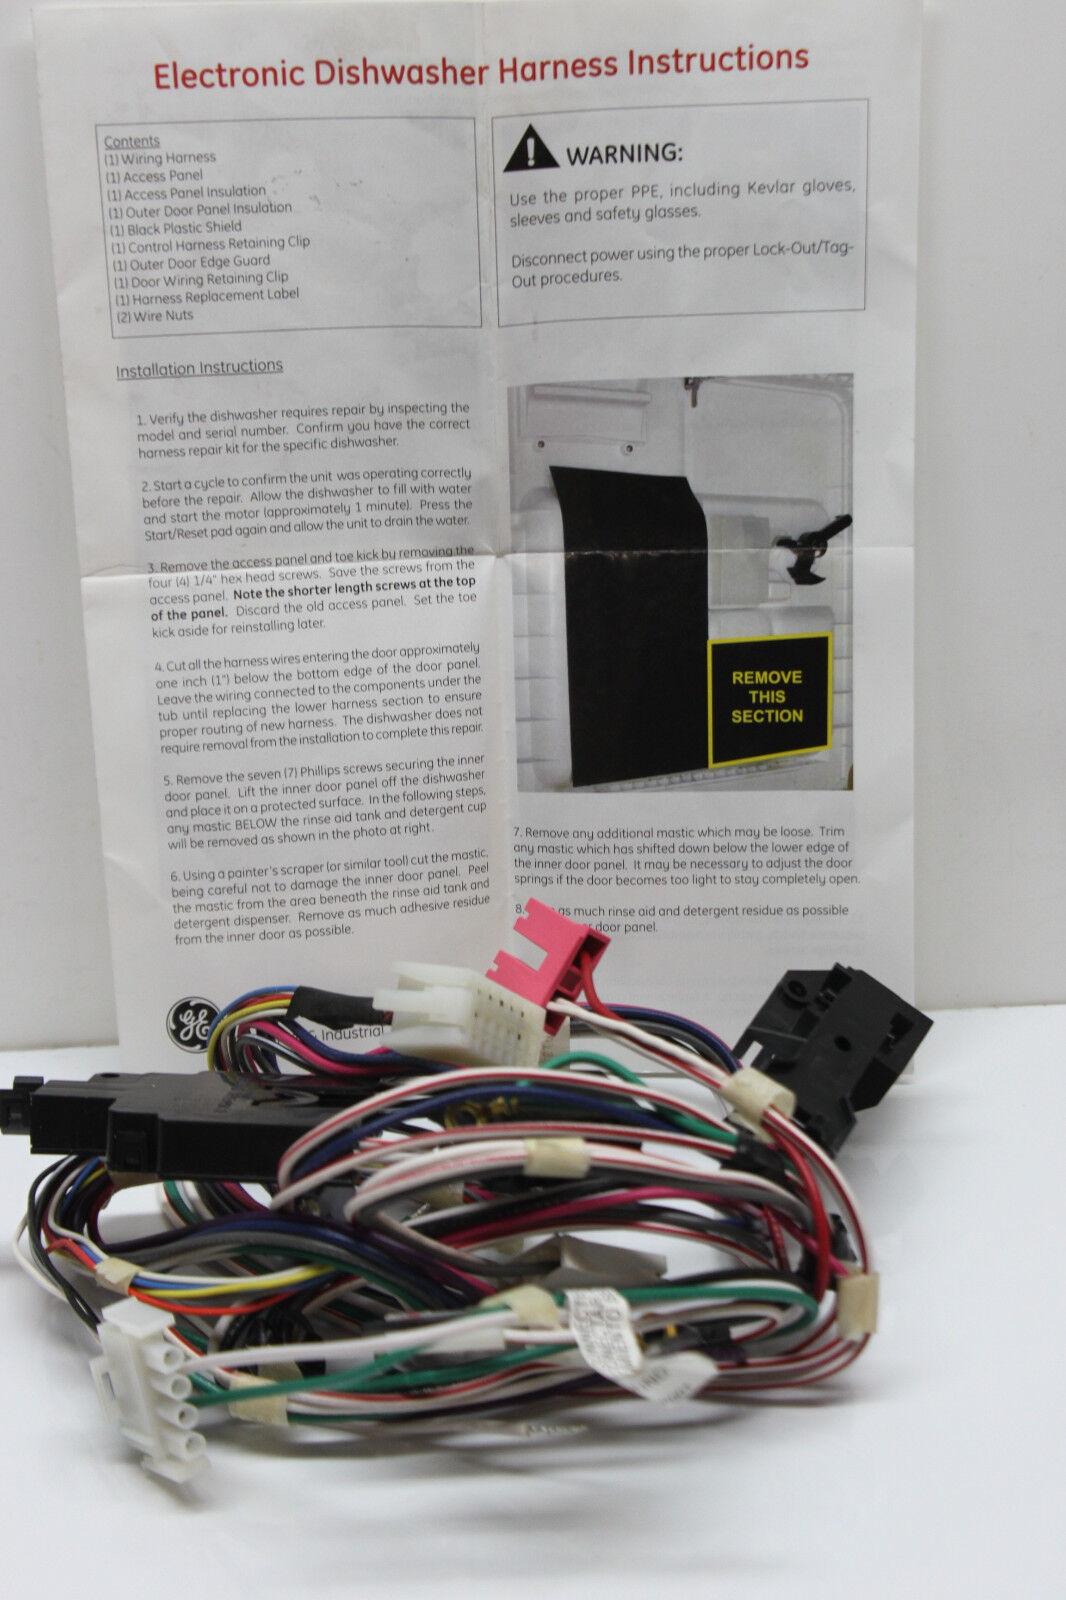 DISHWASHER PARTS / GE ELECTRICAL WIRING HARNESS for MODEL #